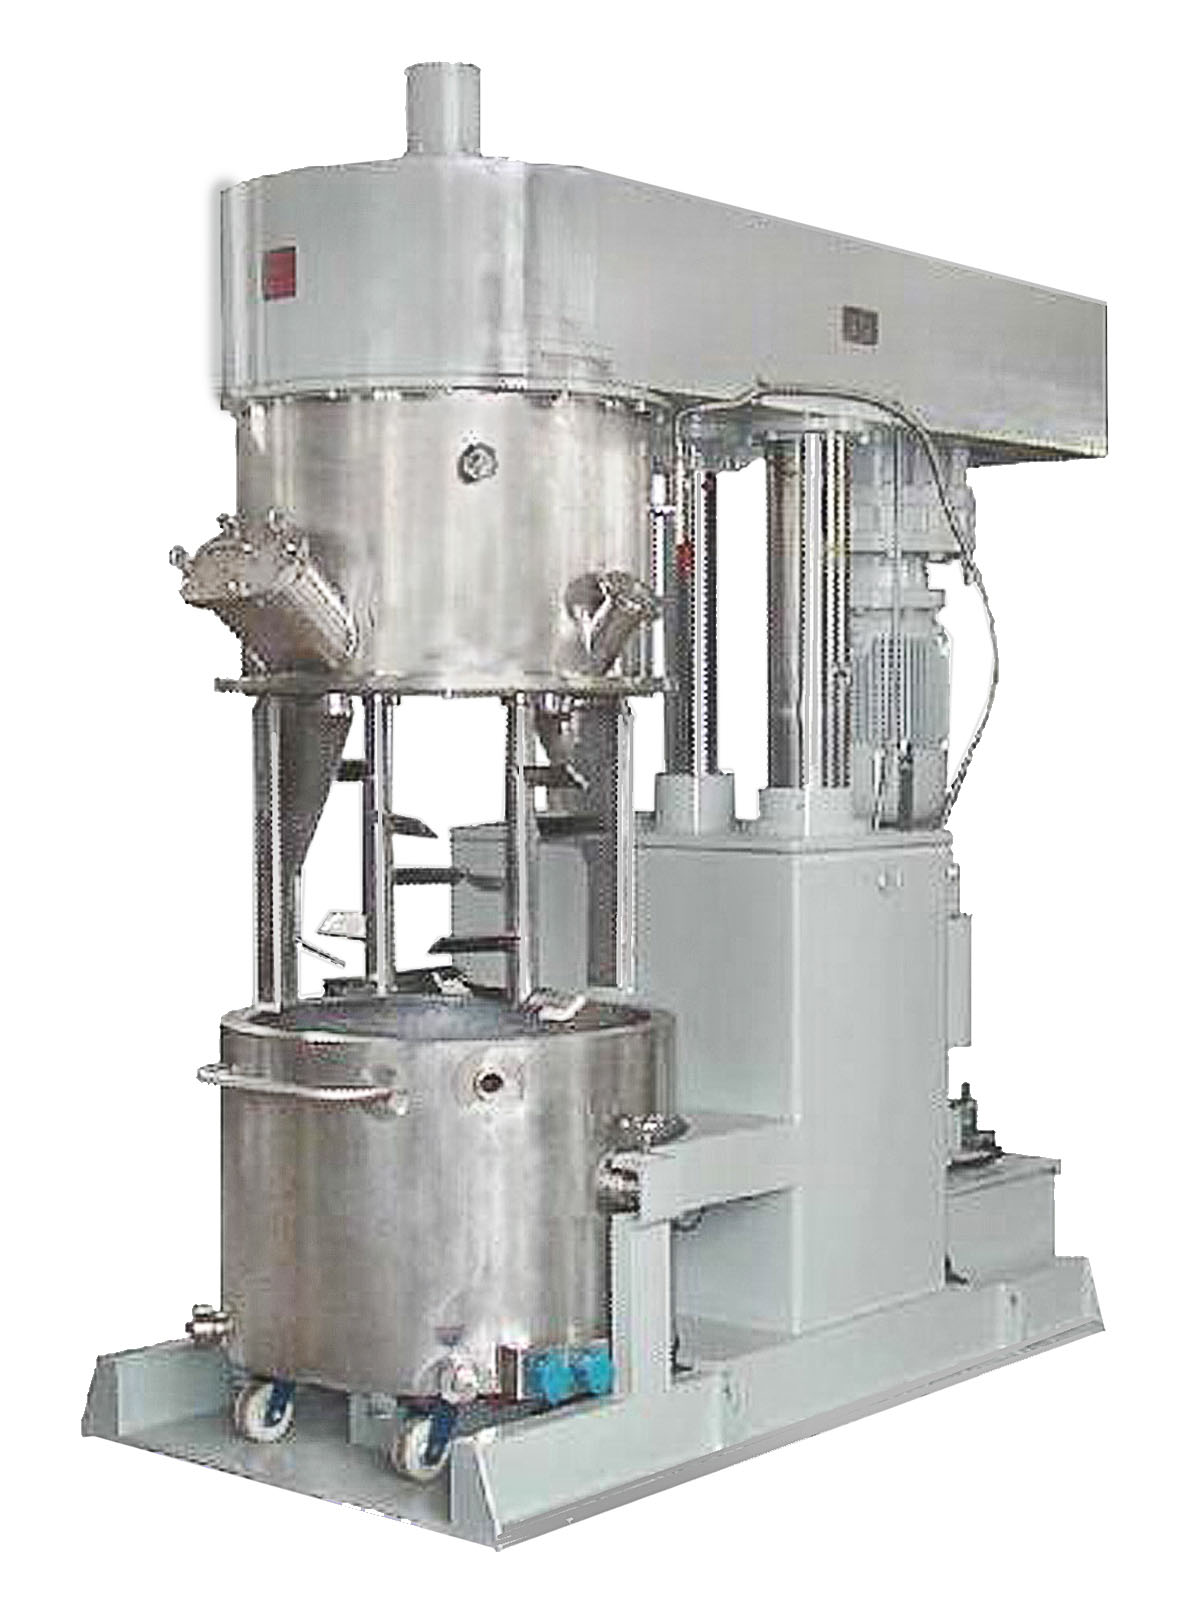 A machine capable of making disinfectant and hand sanitizer——Planetary mixer